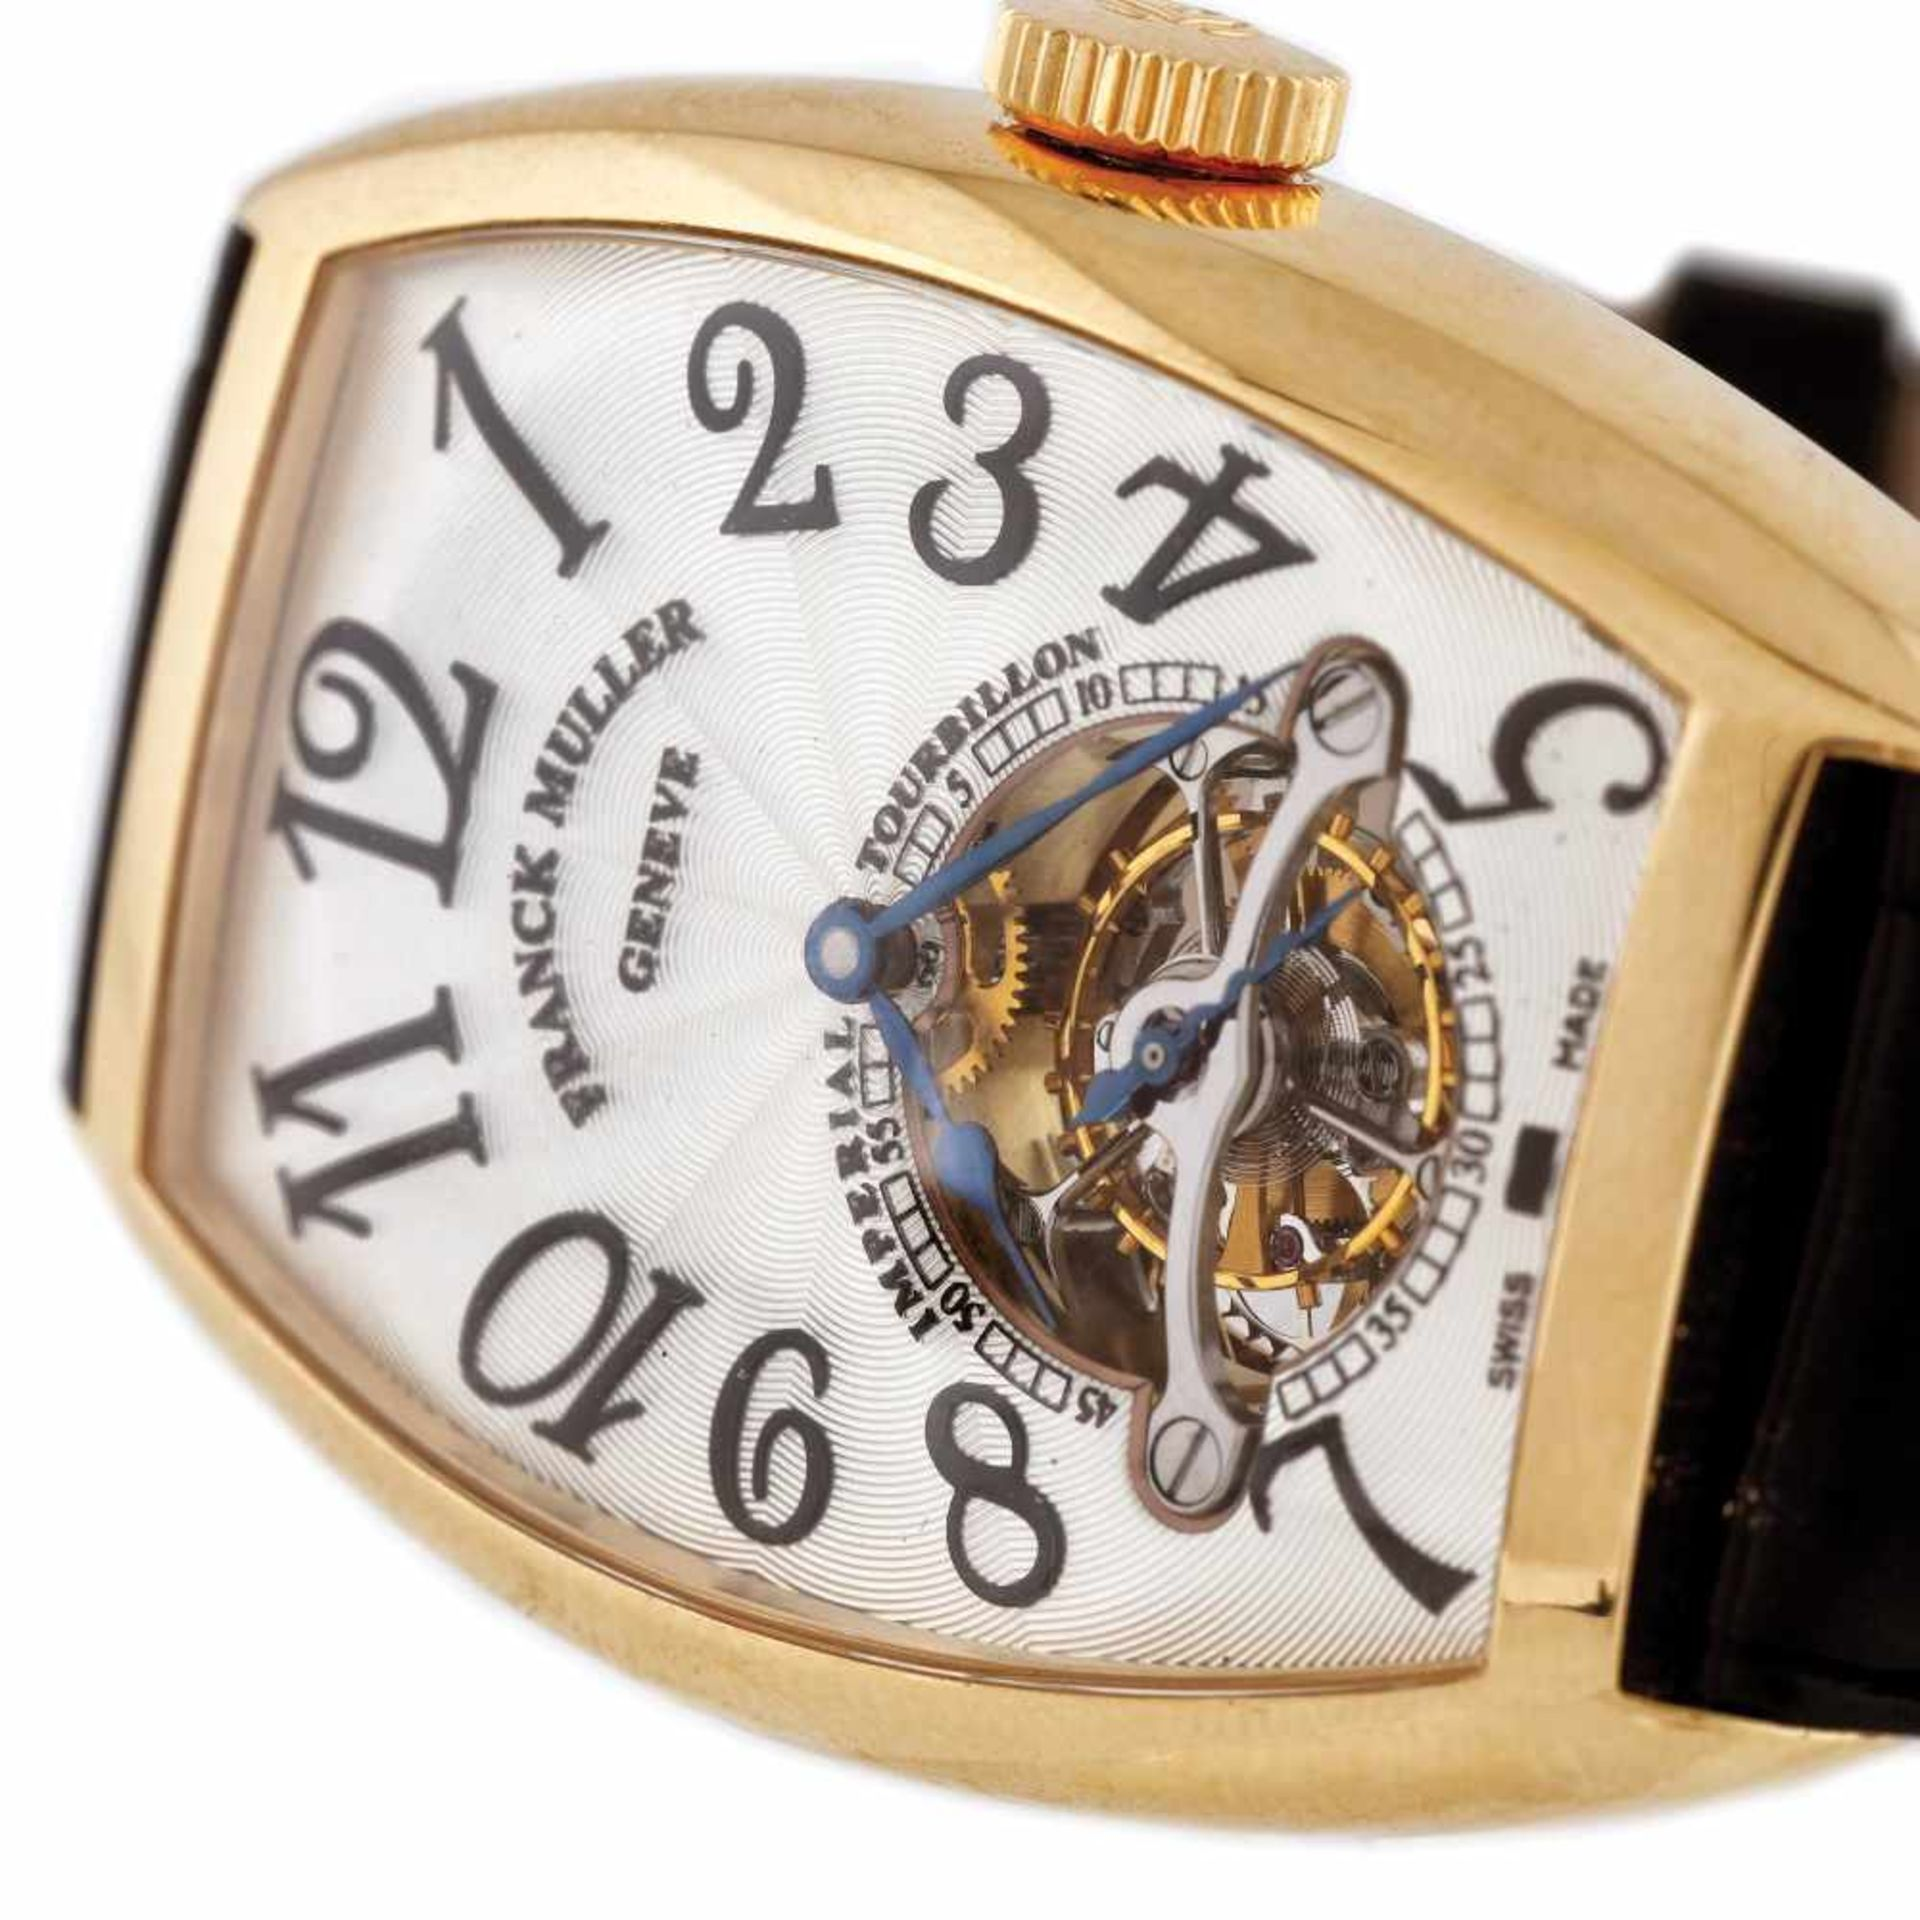 Franck Muller Tourbillion wristwatch, gold, men - Bild 3 aus 4